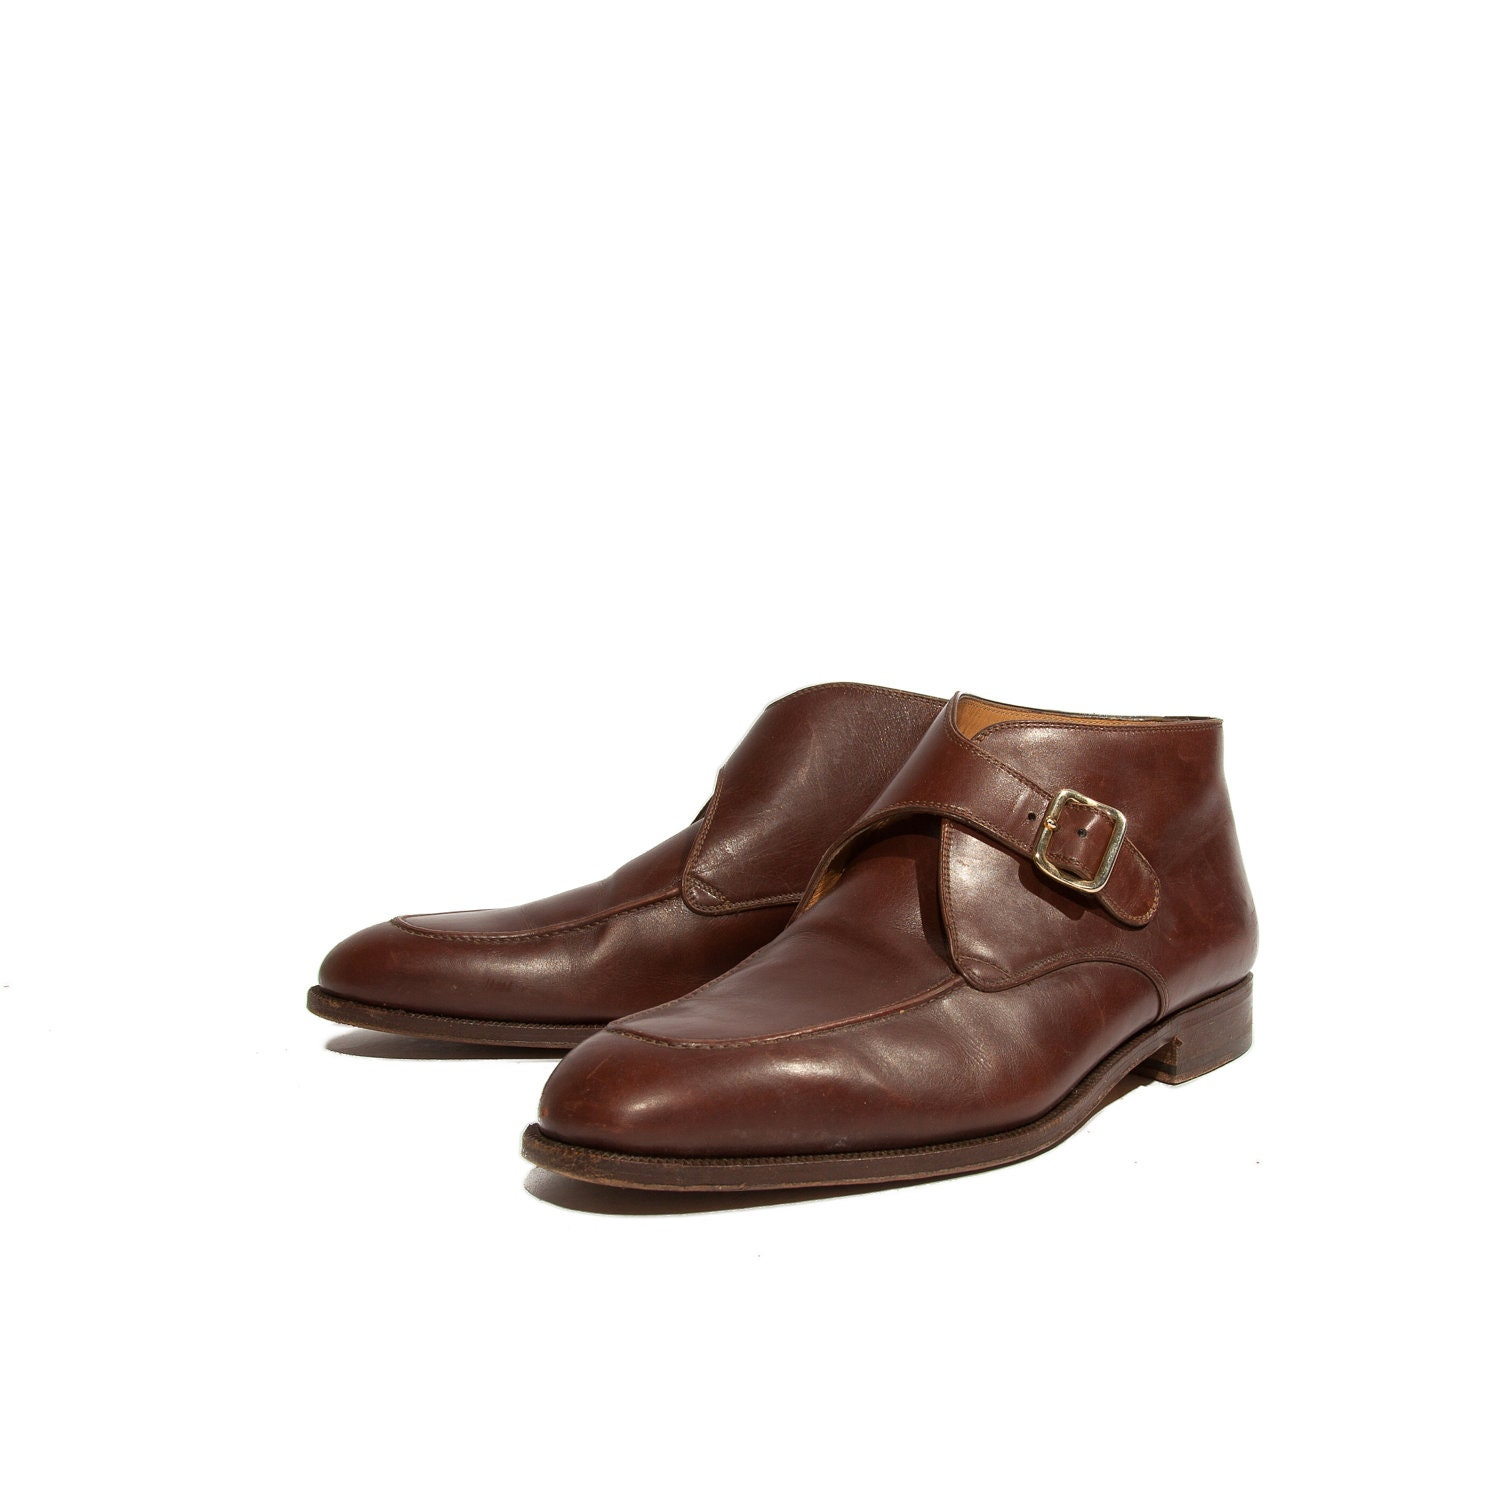 s bally monk ankle boots saddle brown dress